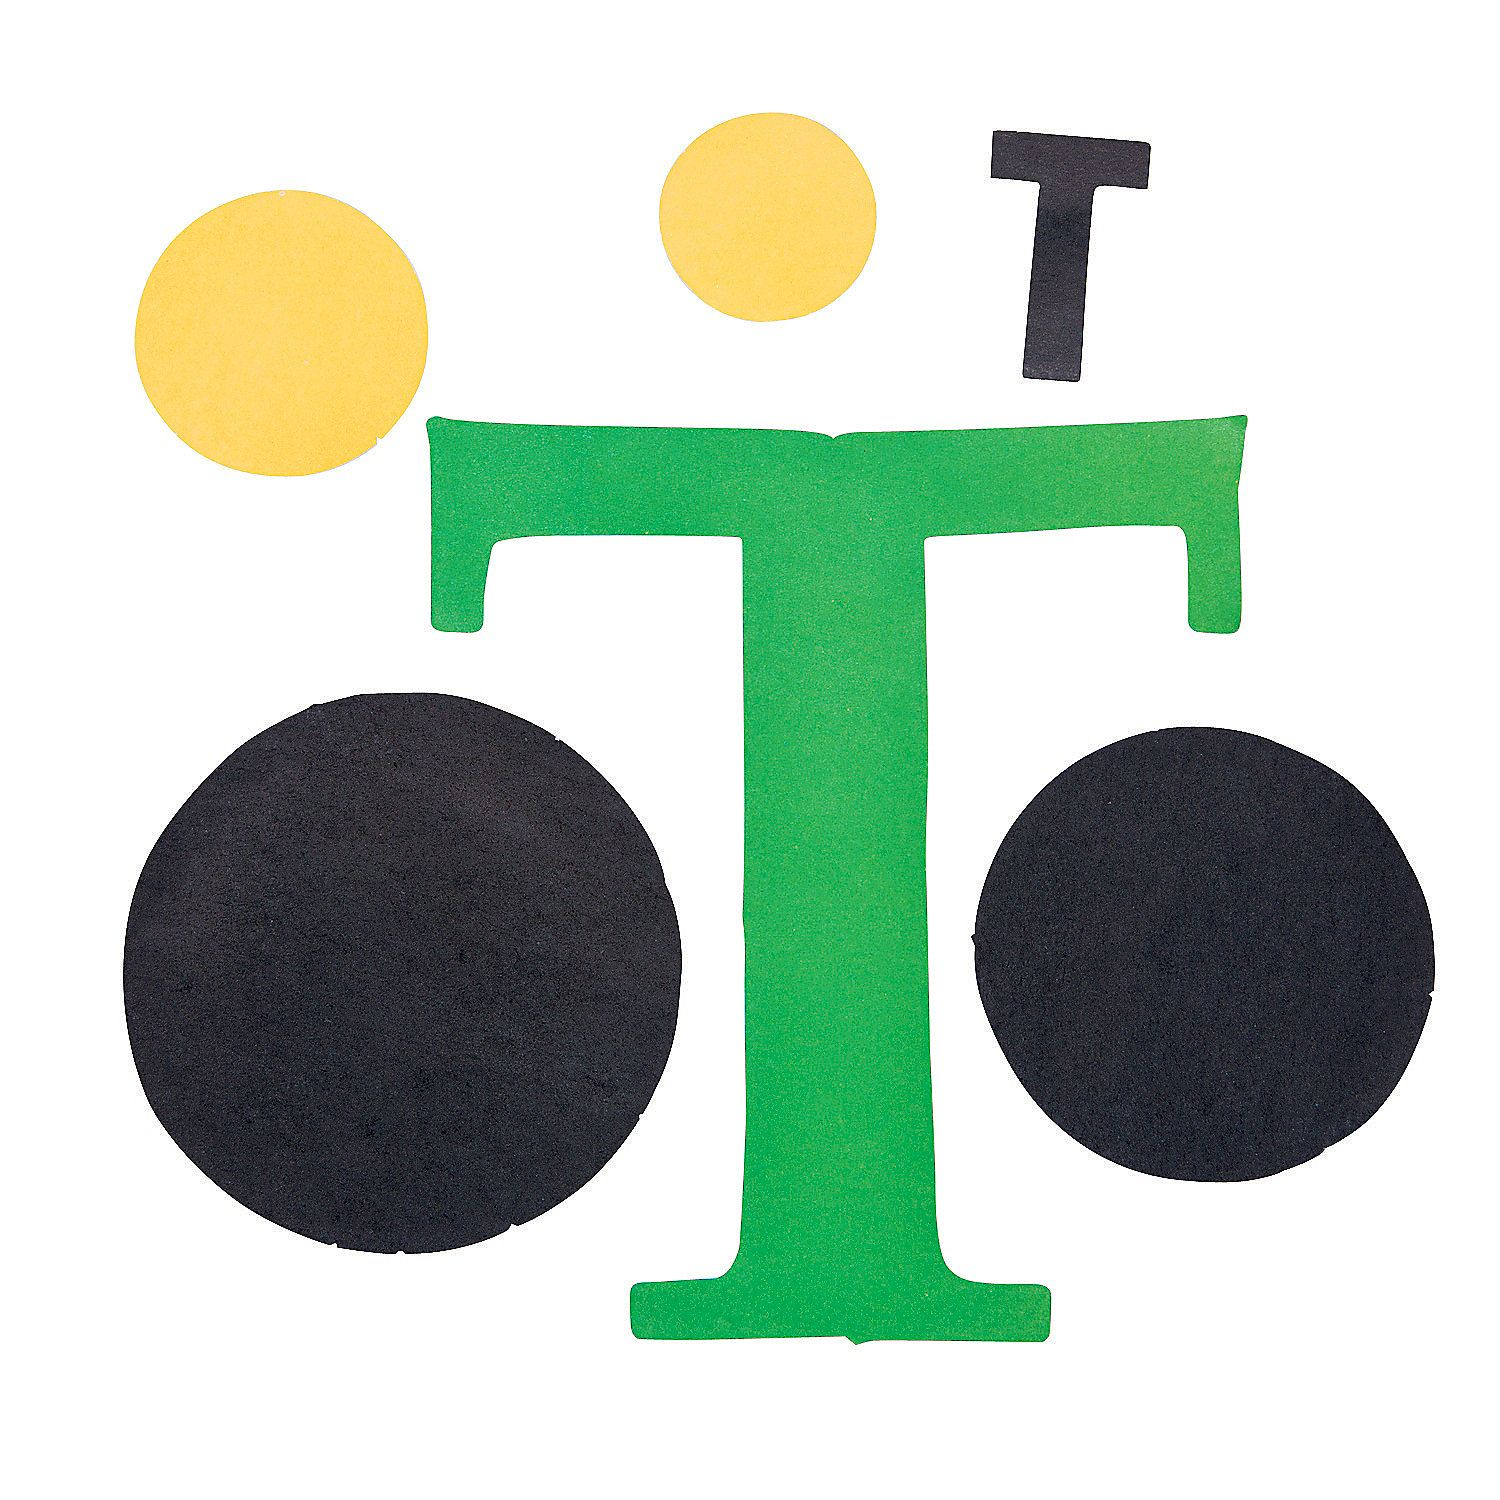 5a0467e6456d560e43432fac0480ee61 T Letter Craft Tractor Template on letter t crafts for toddlers, letter t crafts for preschoolers, letter h horse craft, letter t paper crafts, letter j crafts, letter y yarn craft, letter t activities, letter t crafts on pinterest, letter z crafts, letter u crafts,